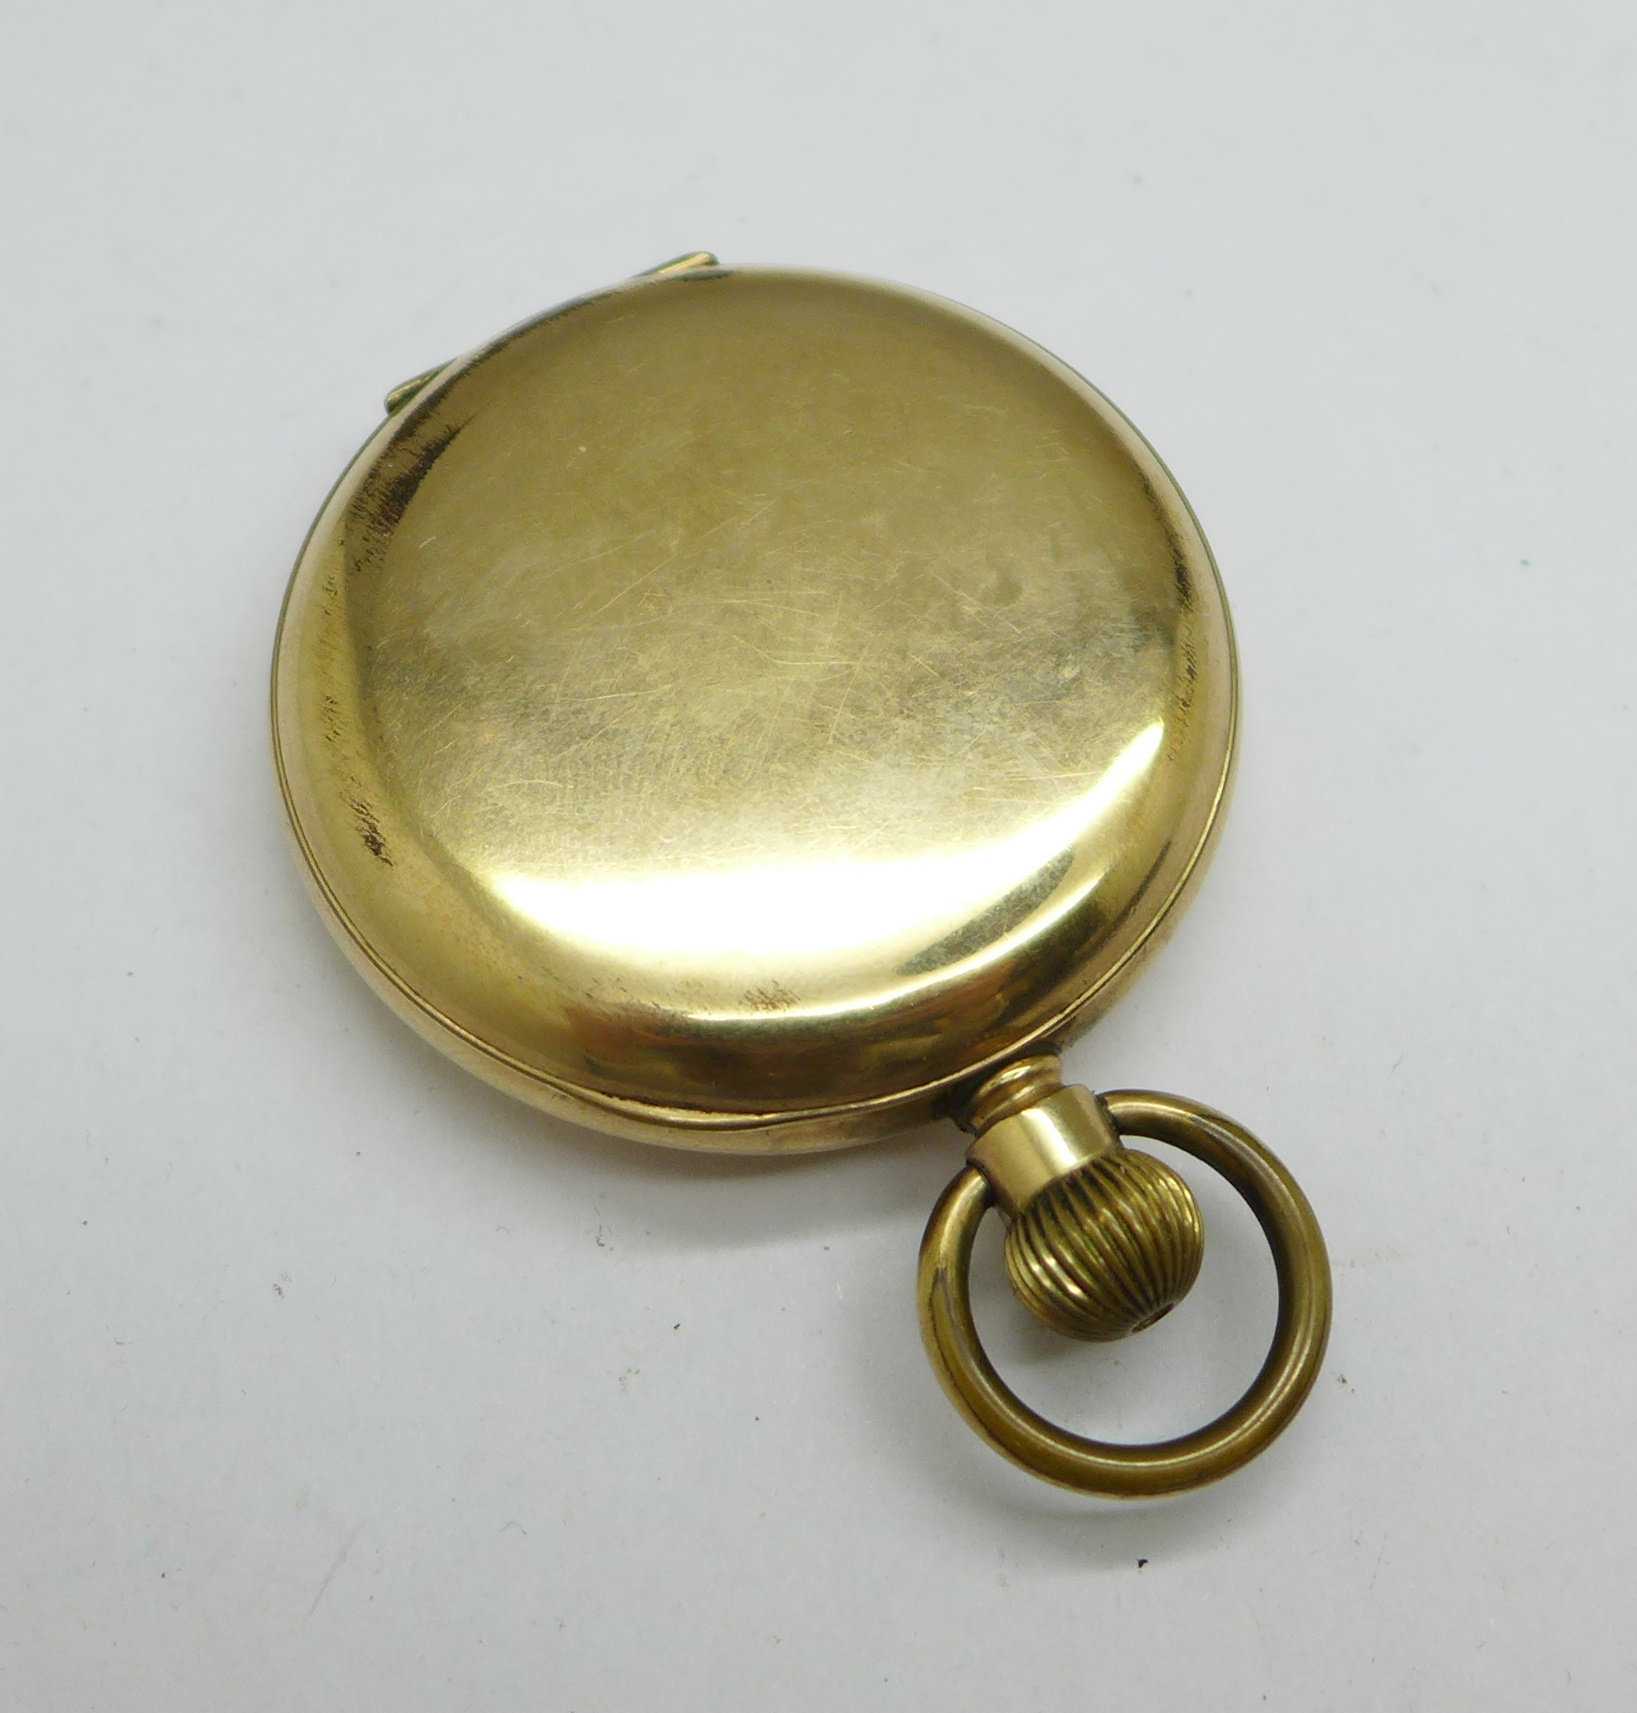 A Rolex wristwatch movement, 23mm, and a Waltham Giant gold plated full hunter pocket watch - Image 6 of 6